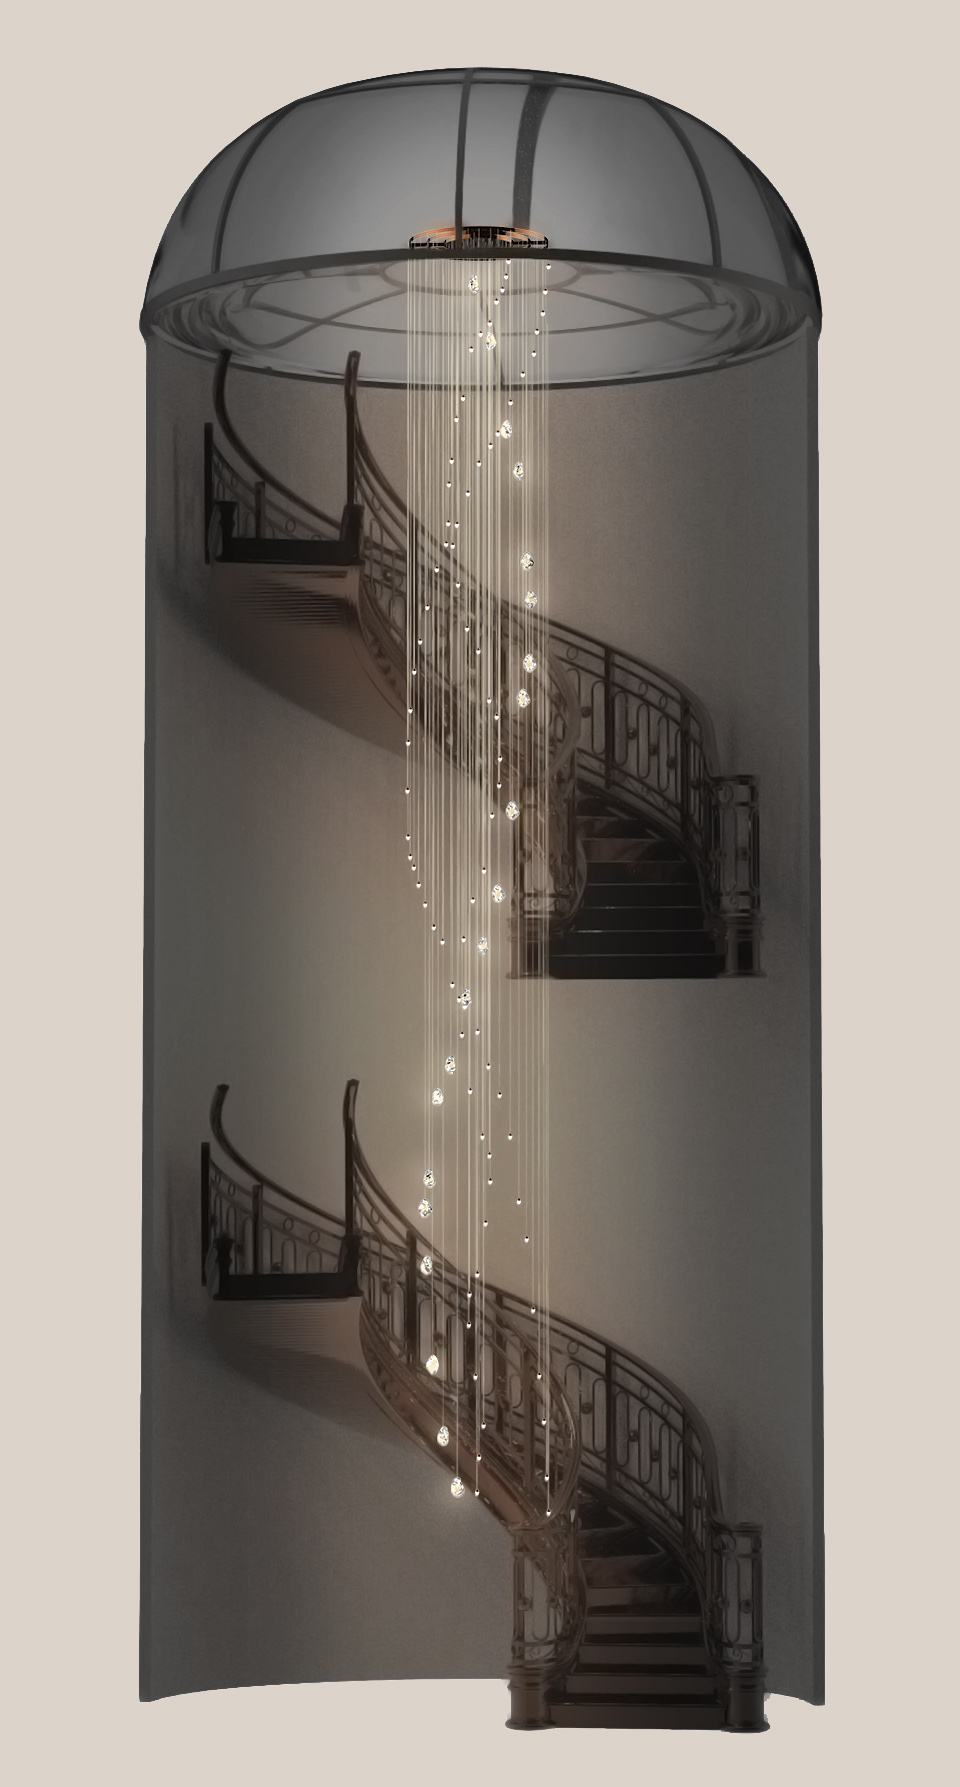 Contemporary Lighting Installation Staircase Handcrafted Components Crystal Clear Rock Formations Twinkling Oval Luminaires Nulty Bespoke